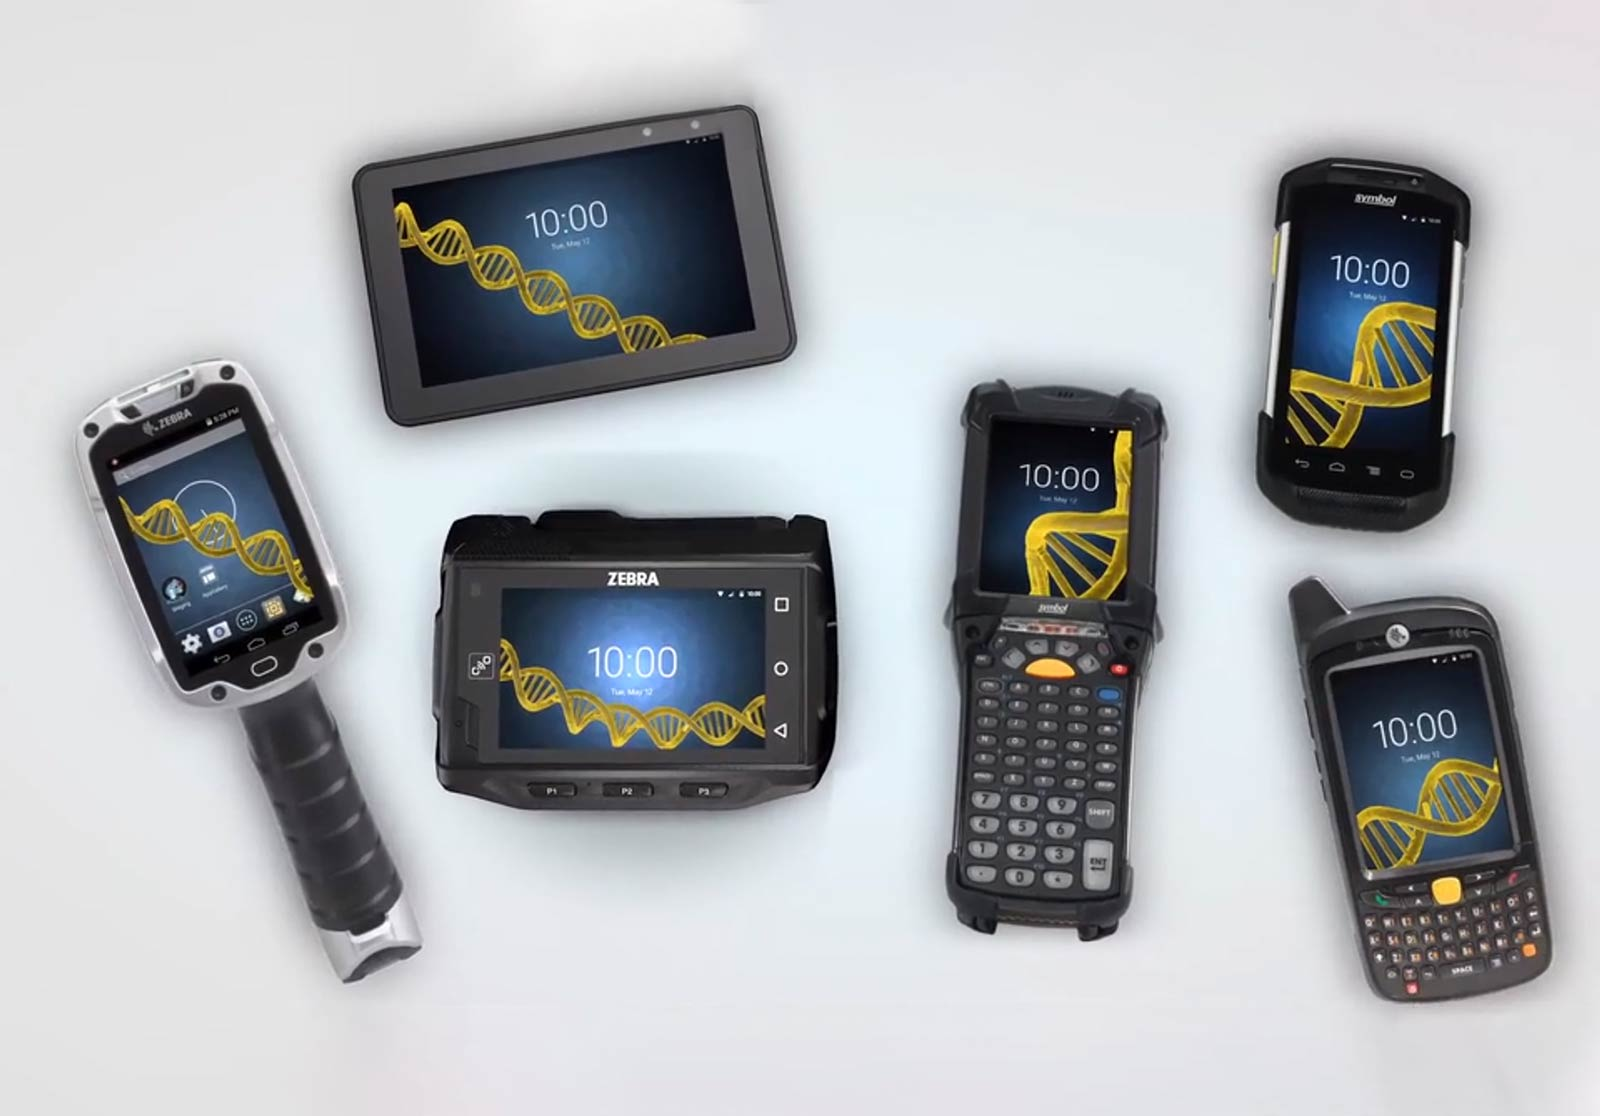 zebra tech barcode scanner devices